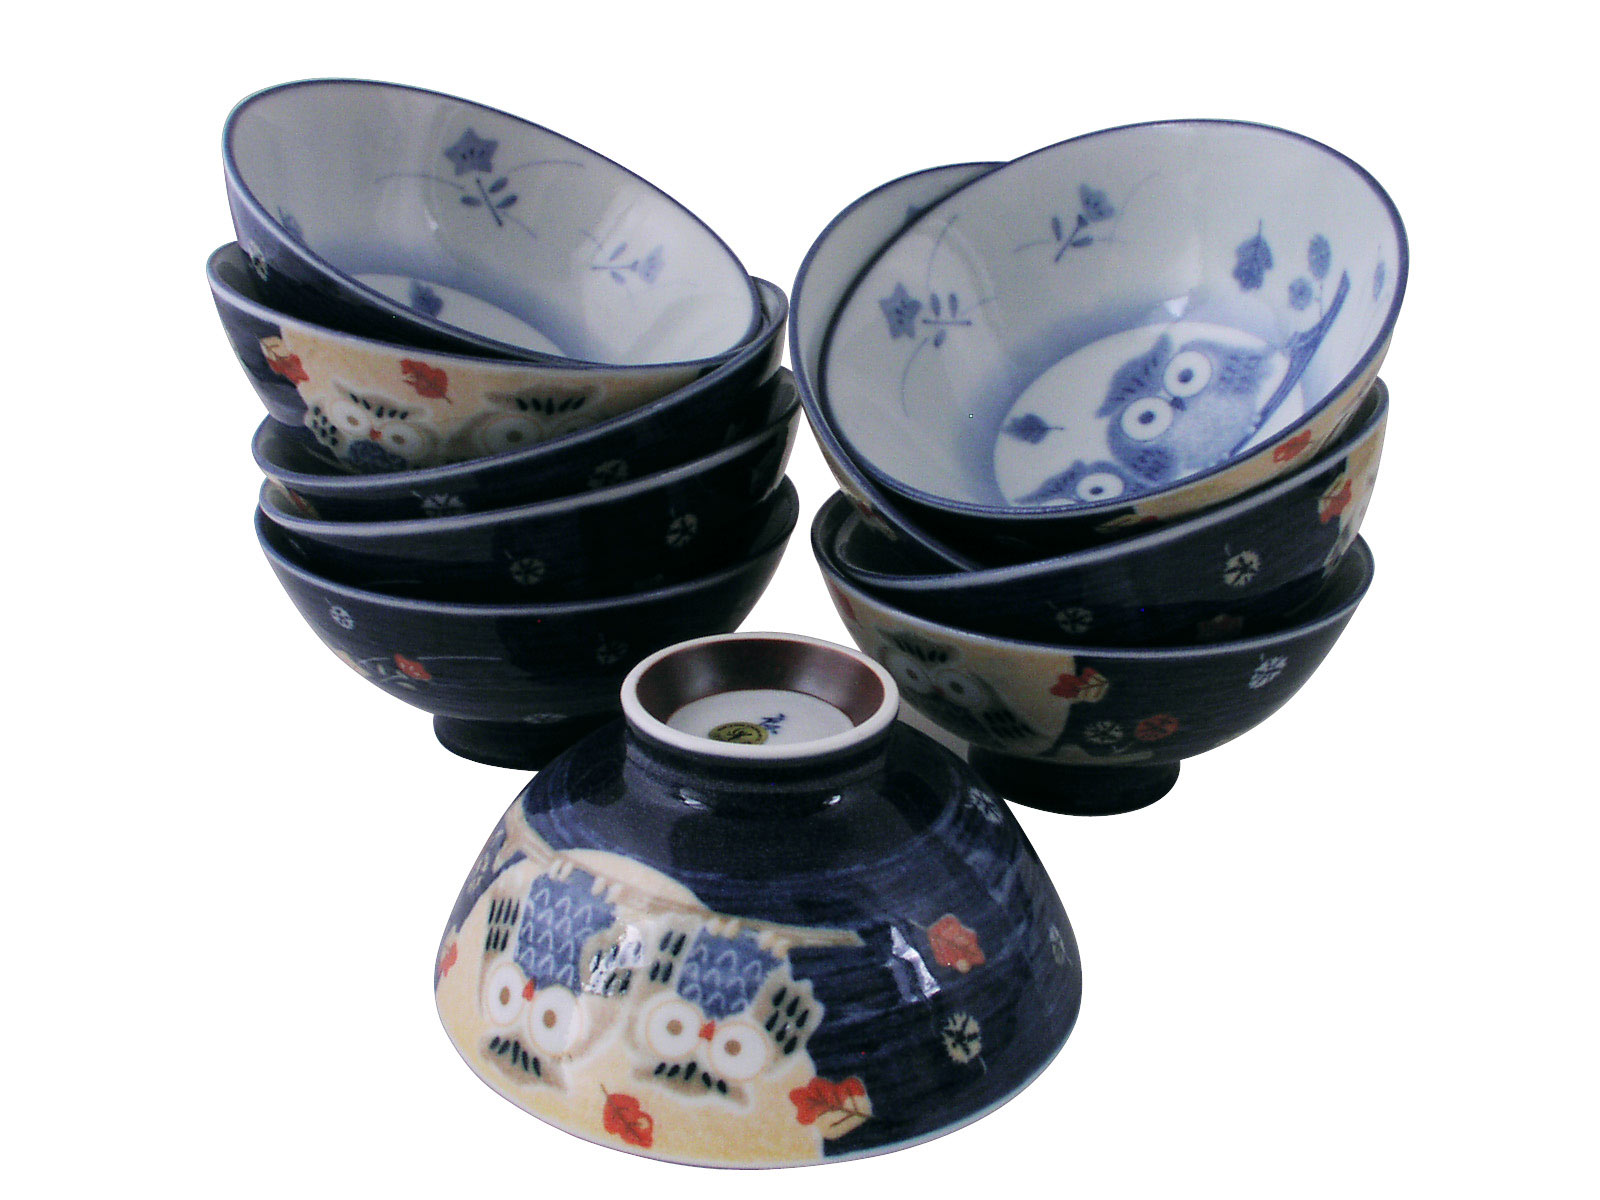 Blue Kitchen Canisters Idyllic Owls Multi Colored Ceramic Japanese Rice Bowl Set